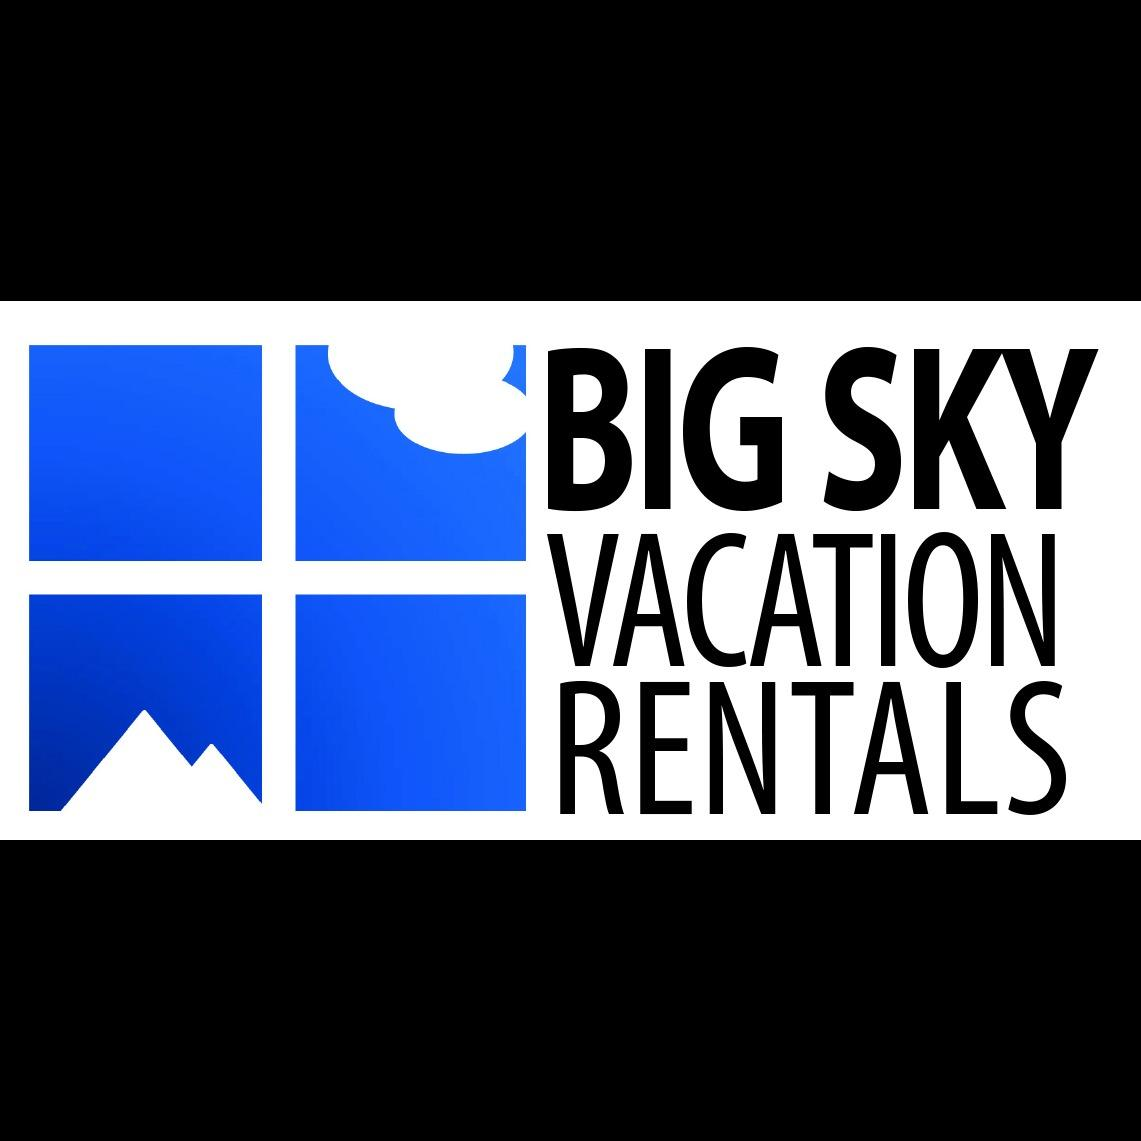 Big Sky Vacation Rentals image 5